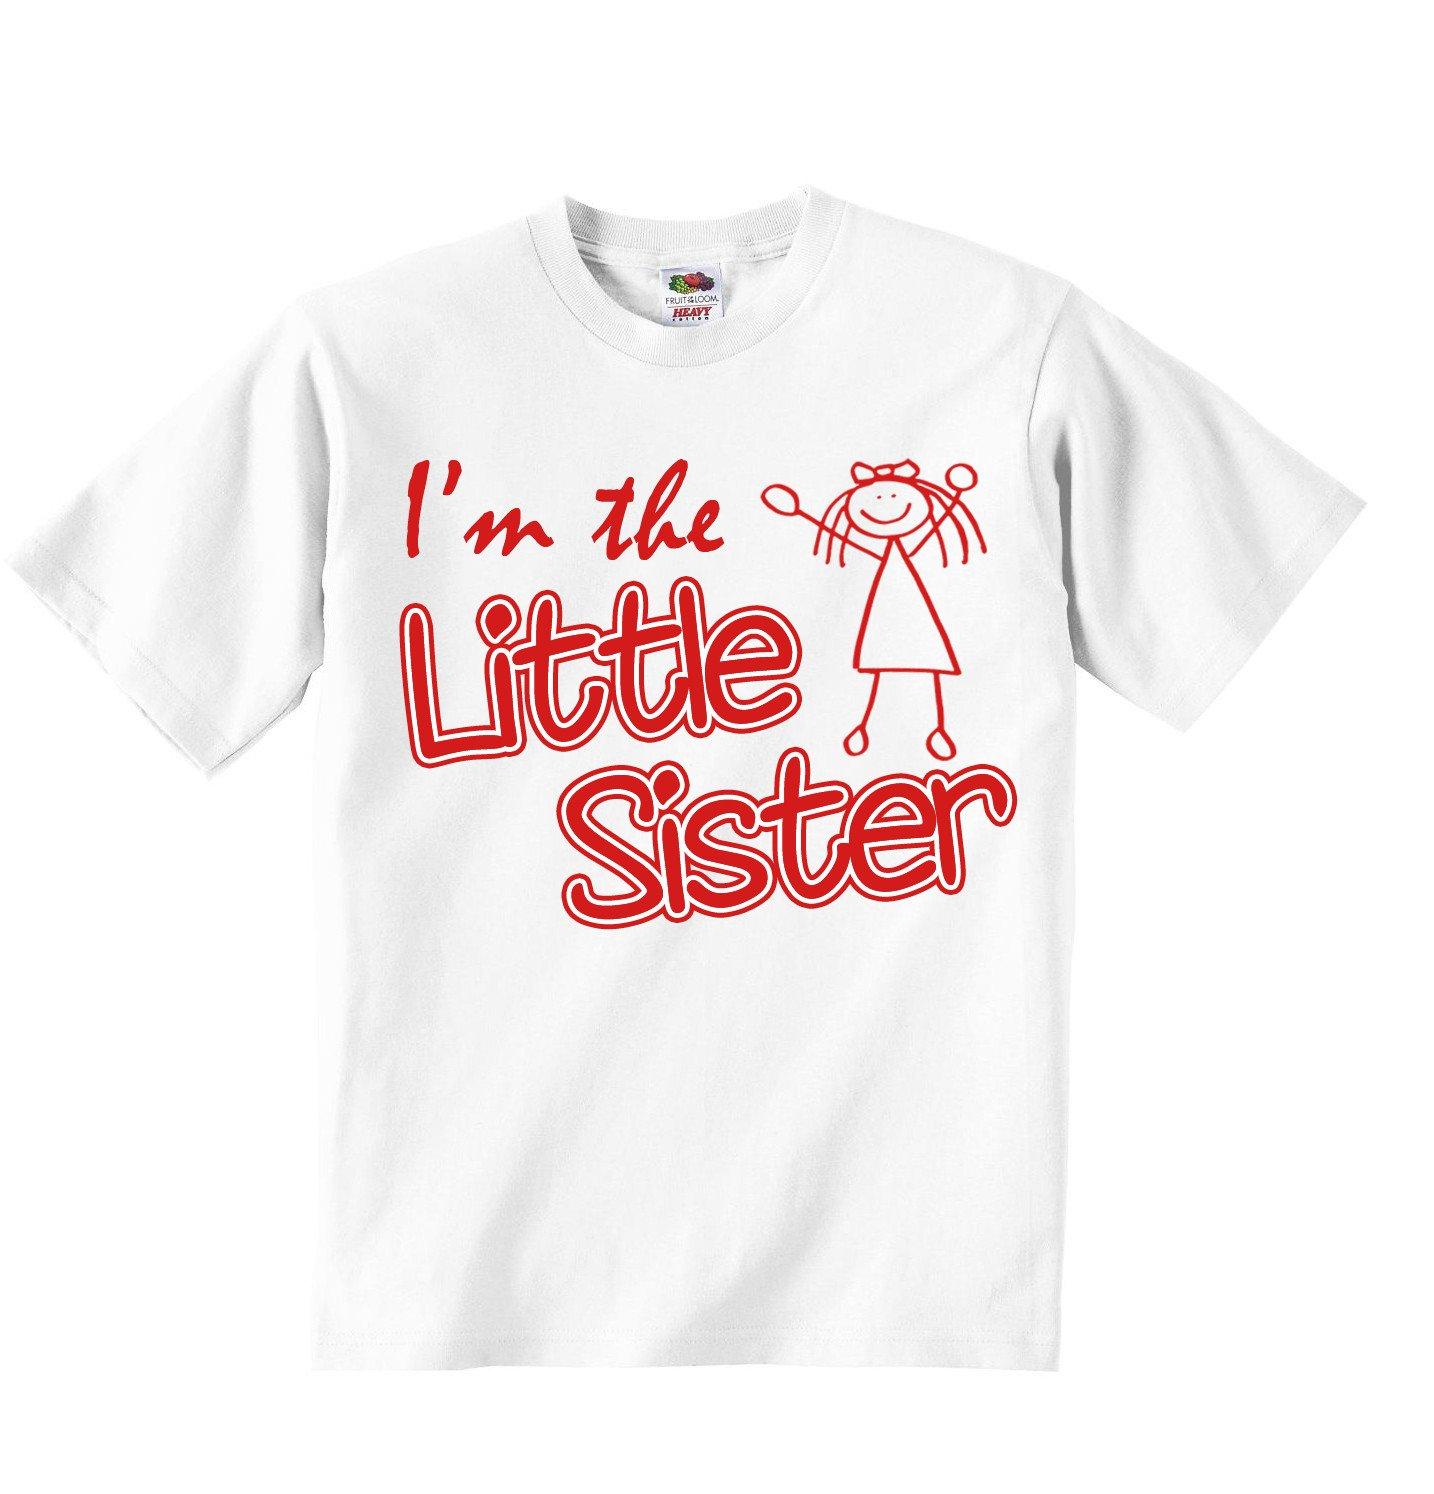 ad37c5f2 Im The Little Sister - Girls T-Shirt Personalized Tees Tshirt Clothing with  Printed Funny Quotes - White - 1-2 Years: Amazon.co.uk: Baby